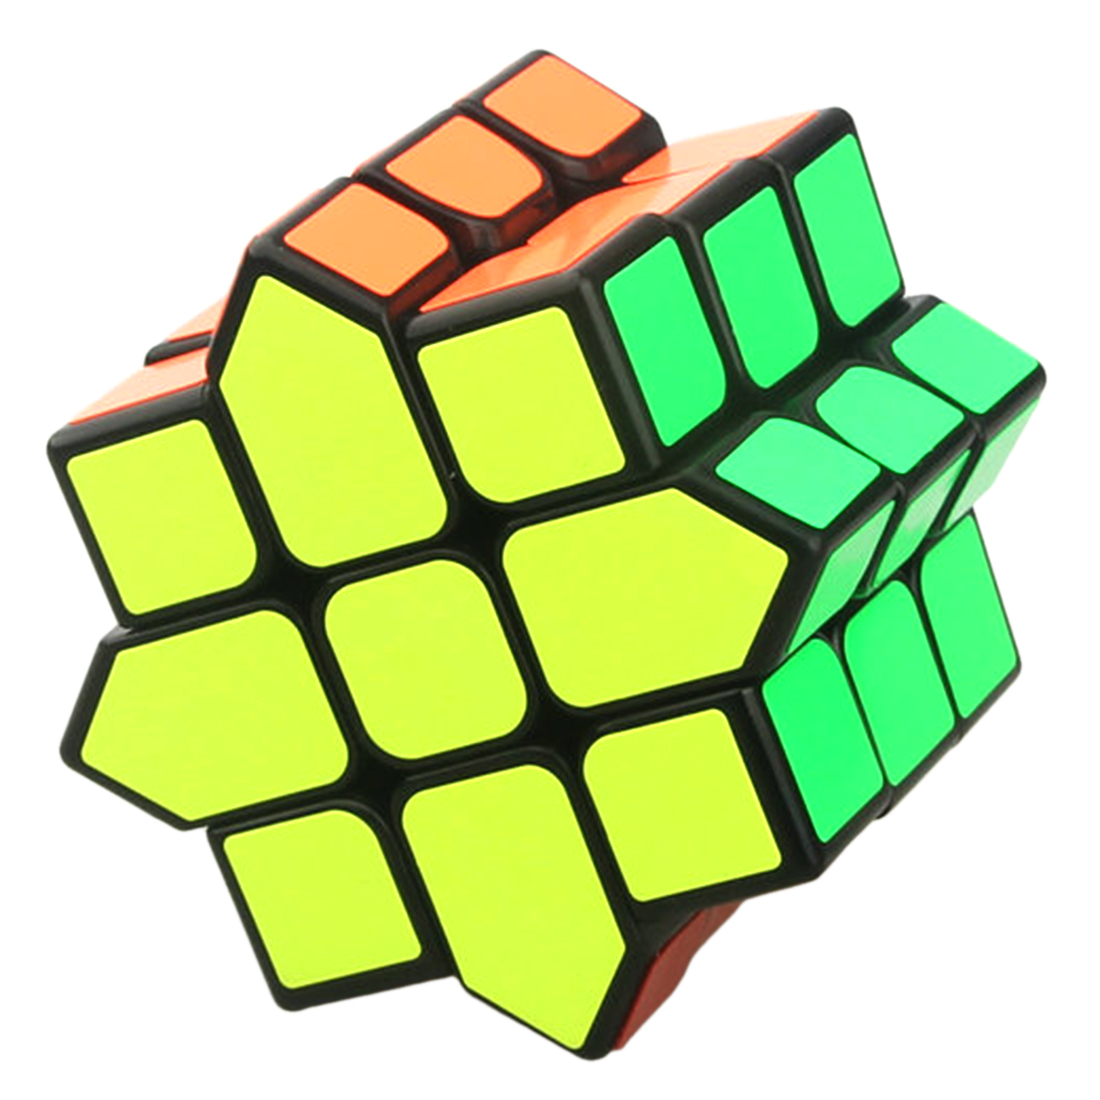 цена на Tise Anise Star Magic Puzzle Cube Speed Magic Cube Intelligent Gift Toys For Children - Black